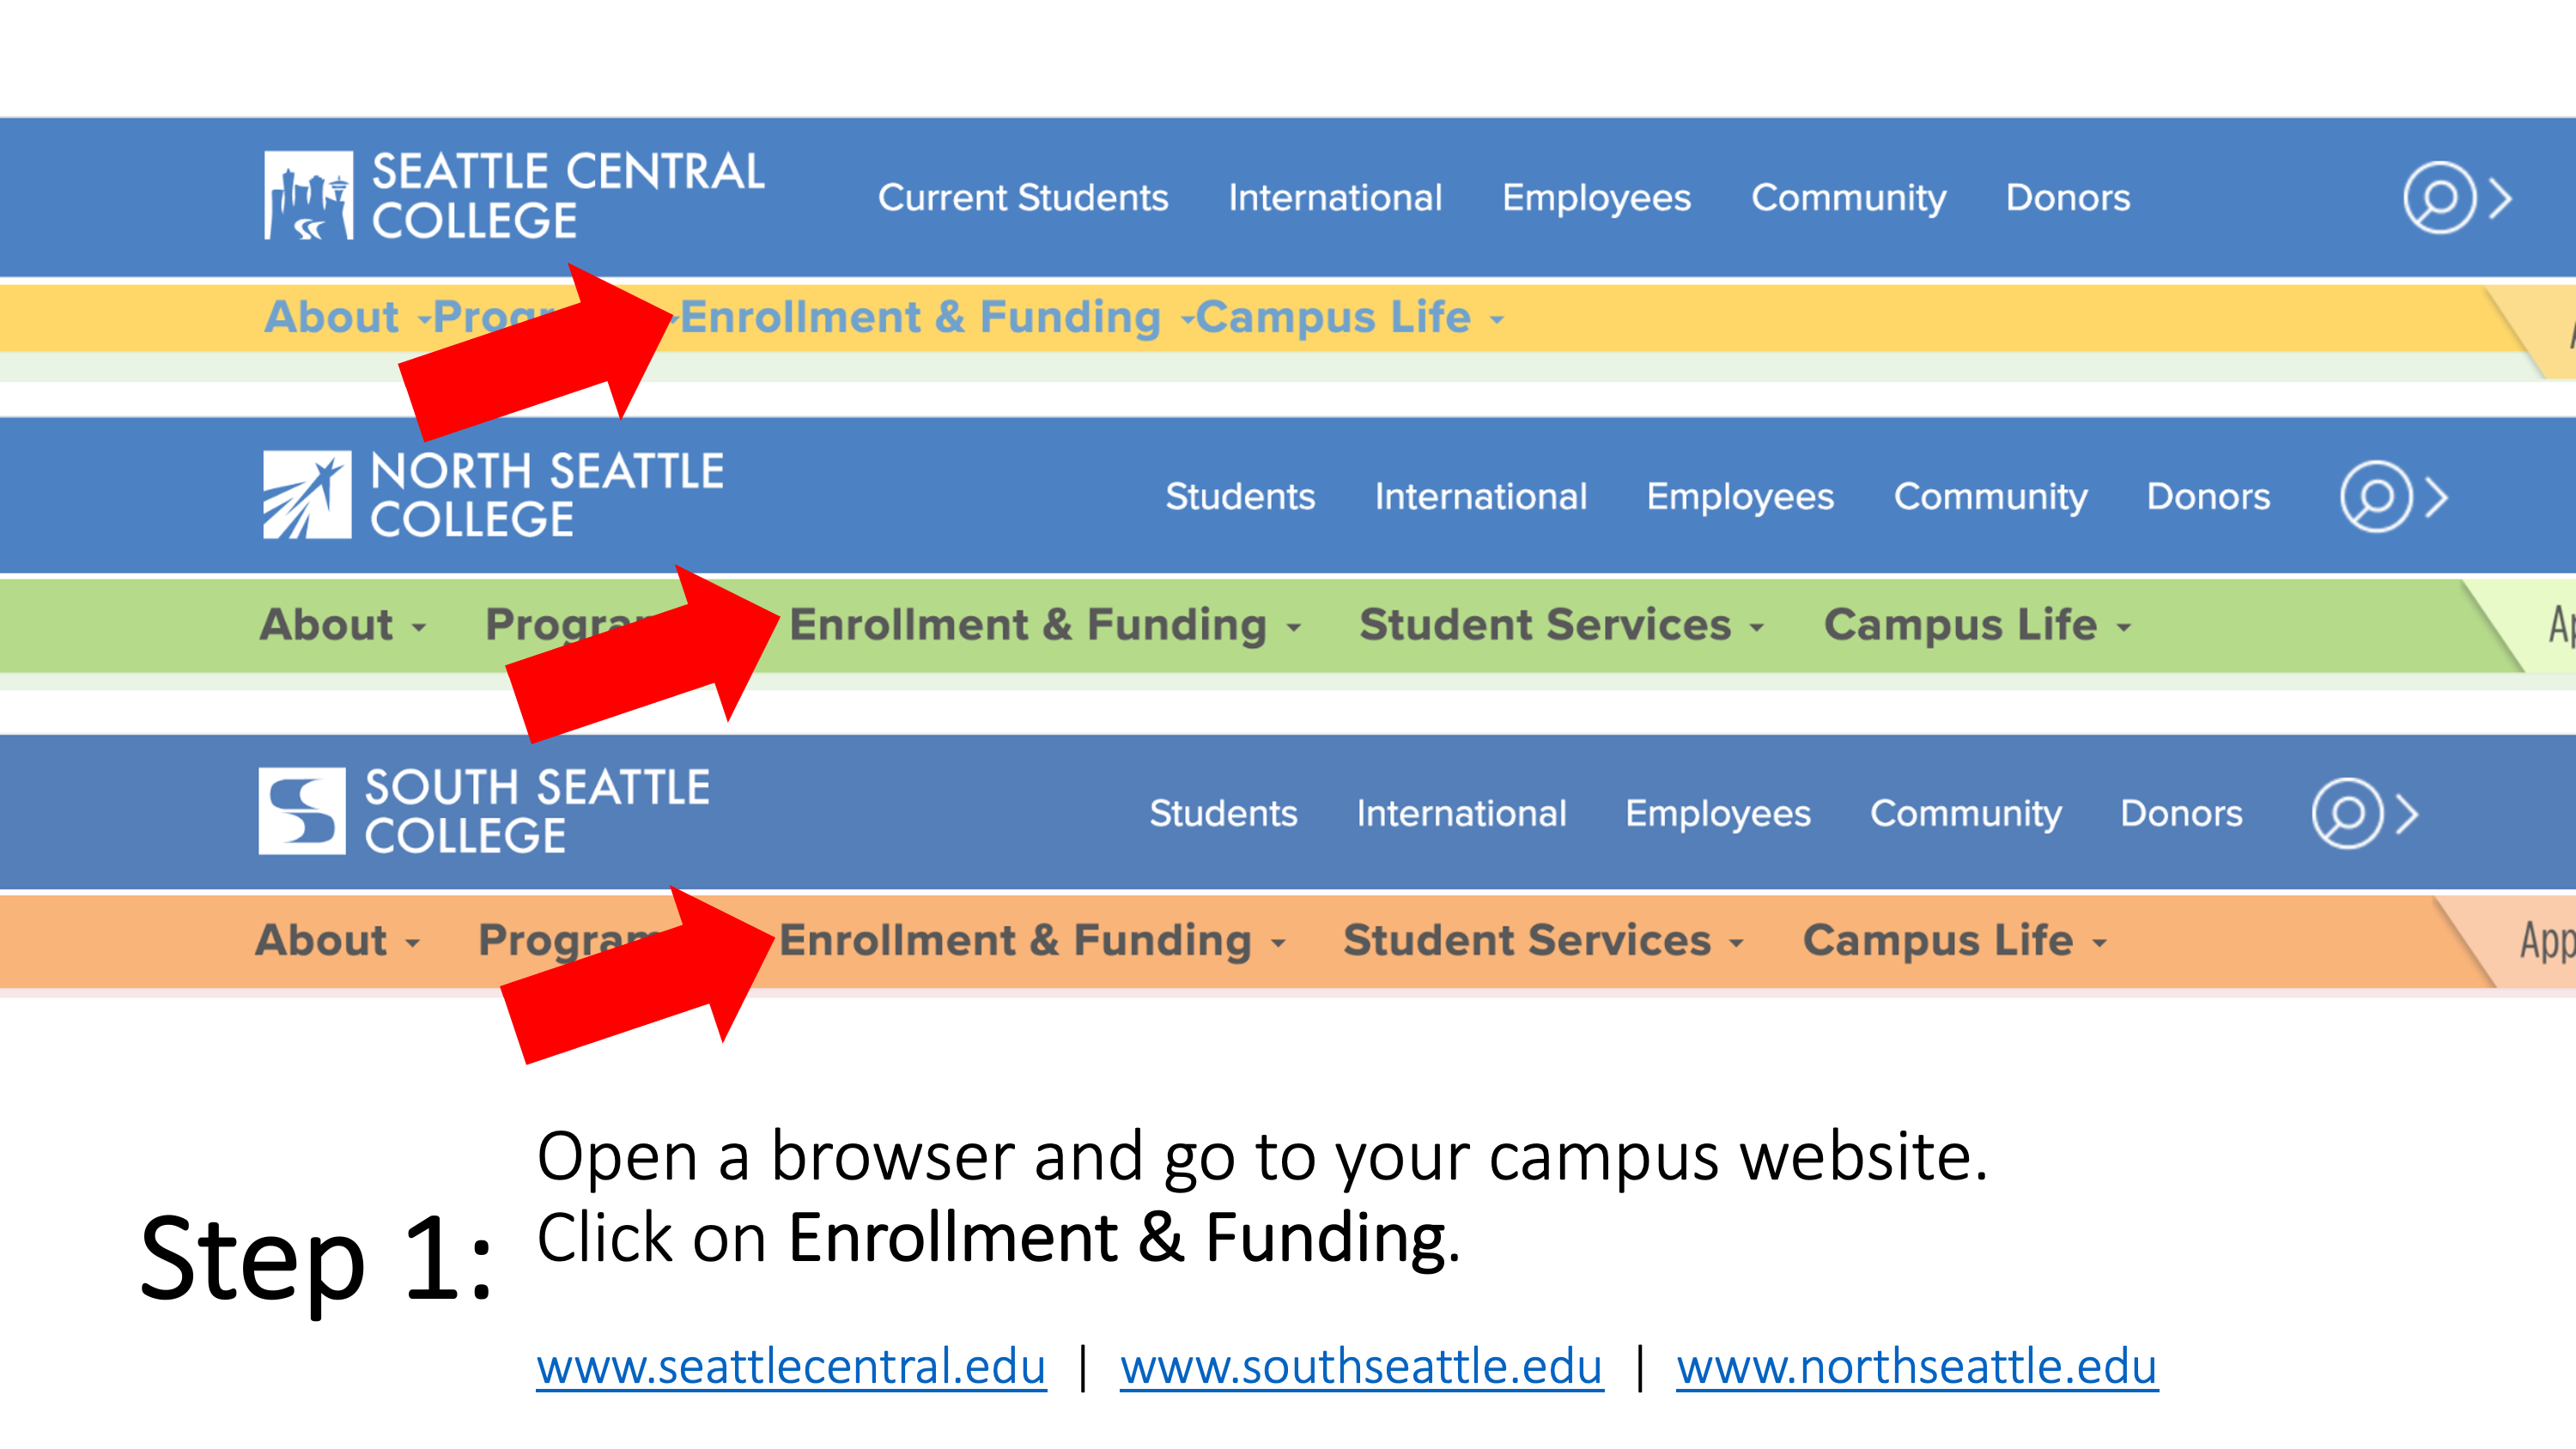 Open a browser and go to your campus website.  Click on Enrollment & Funding. www.seattlecentral.edu , www.southseattle.edu , or www.northseattle.edu.